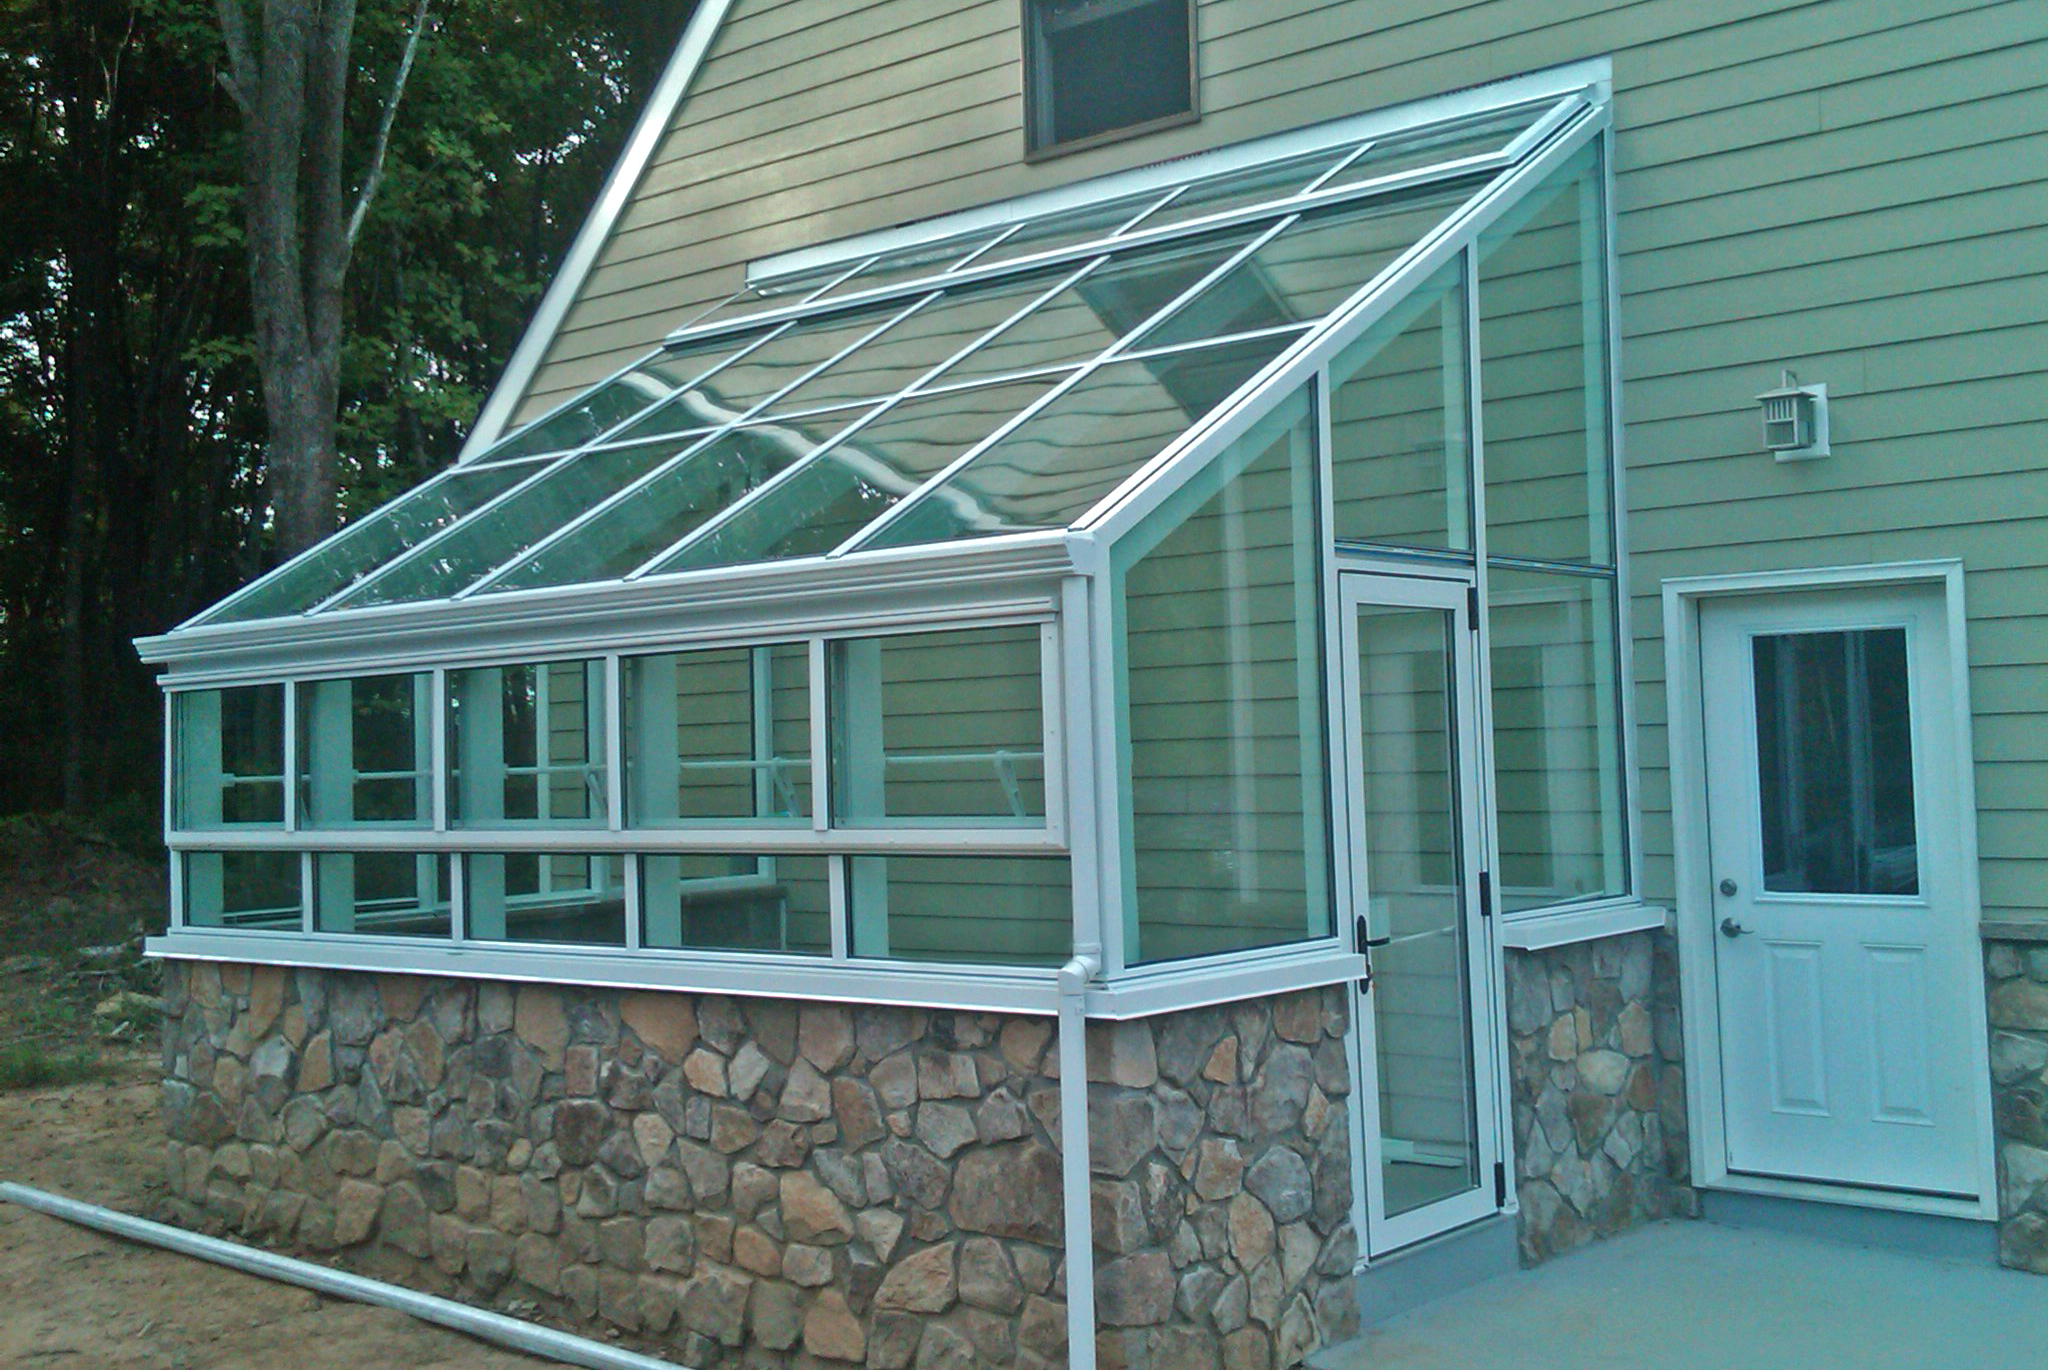 Straight eave lean-to greenhouse.